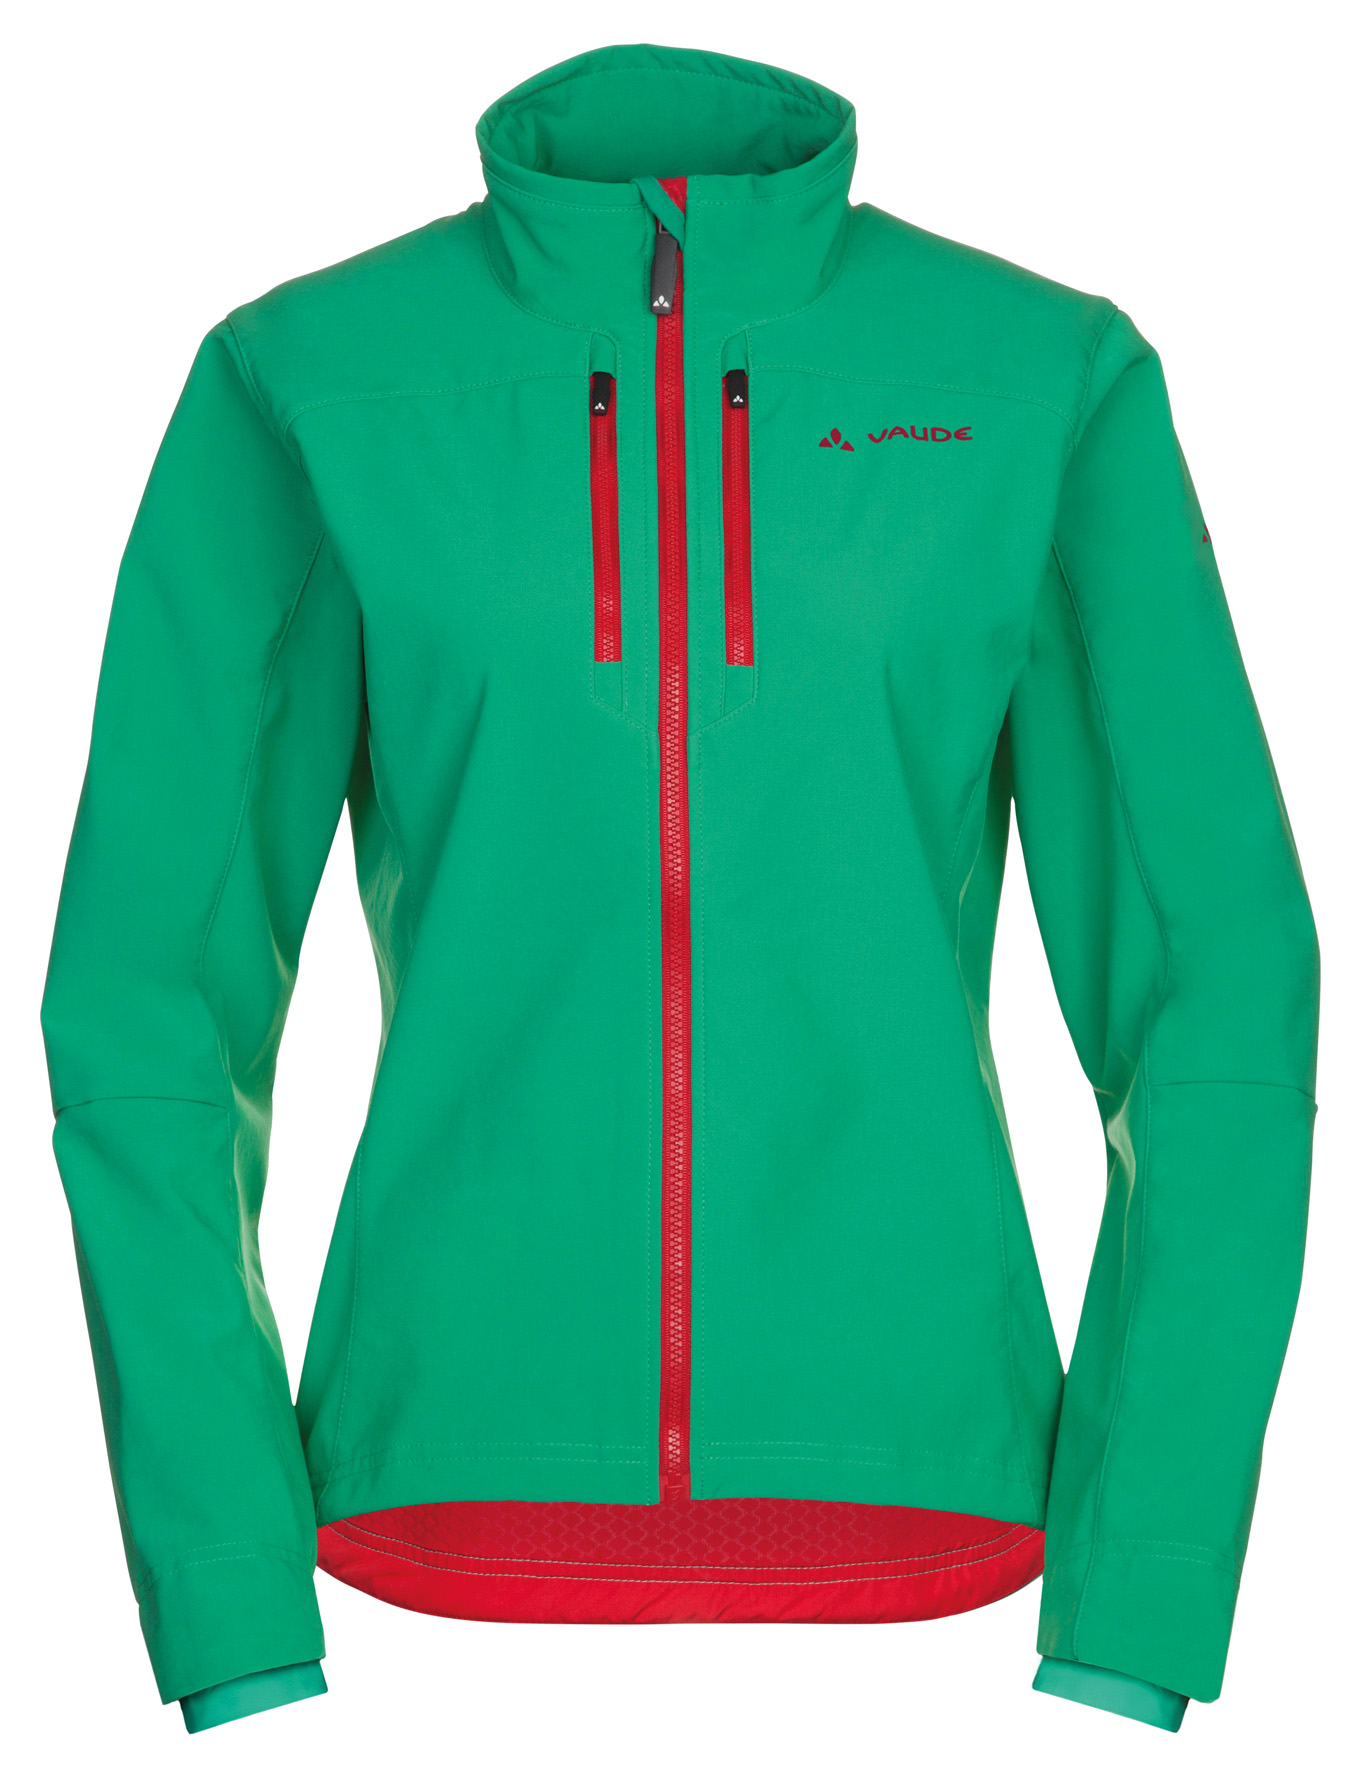 Women´s Qimsa Softshell Jacket atlantis Größe 46 - schneider-sports